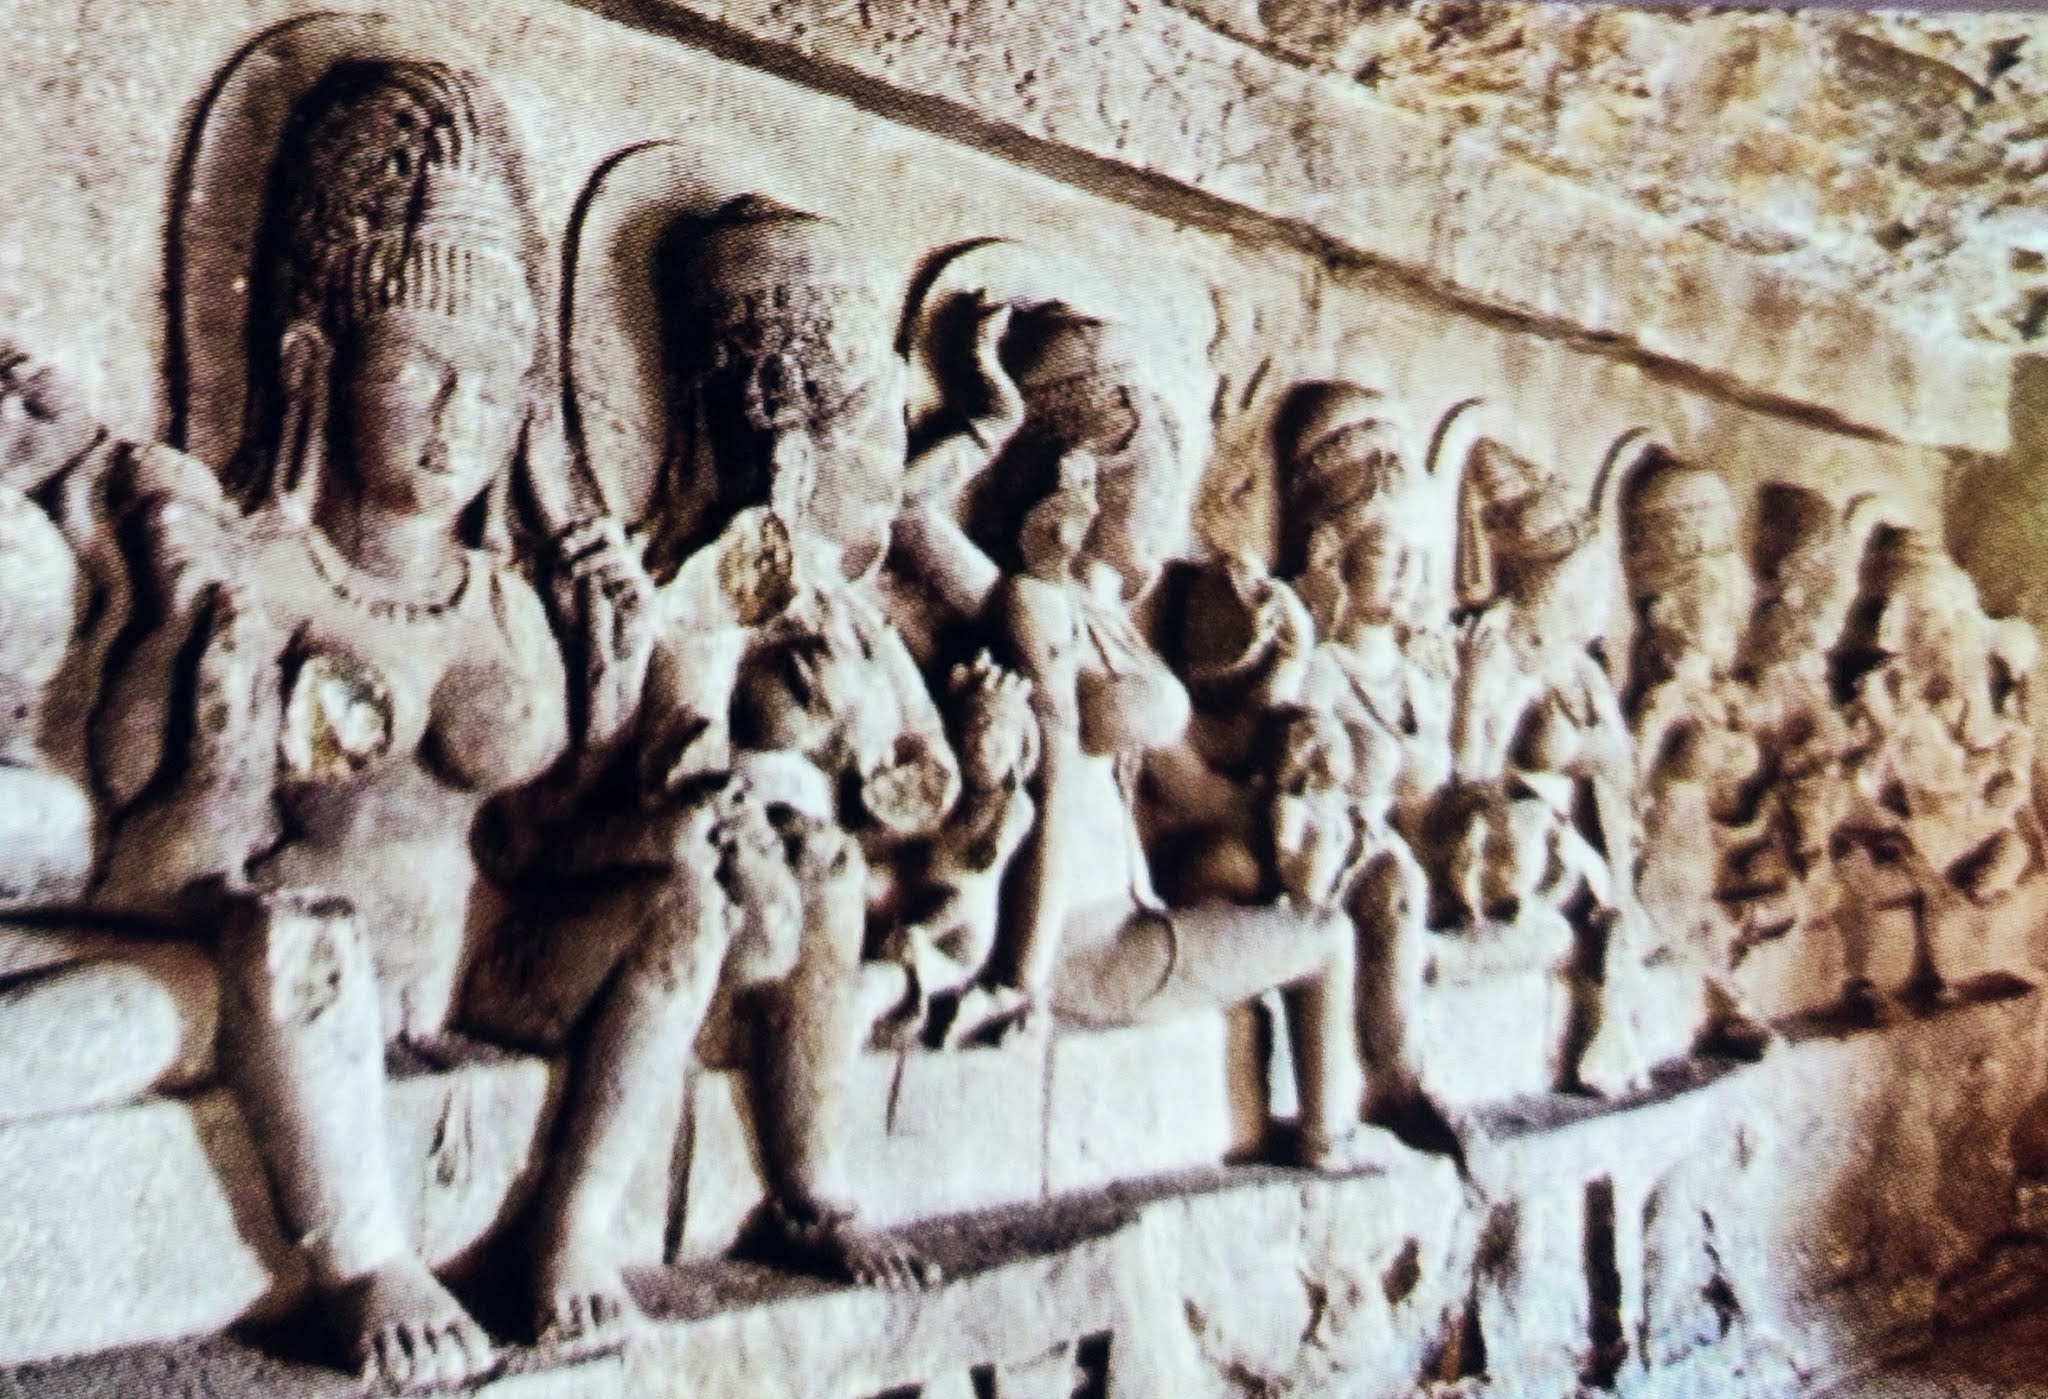 Image contains inside view of ellora cave